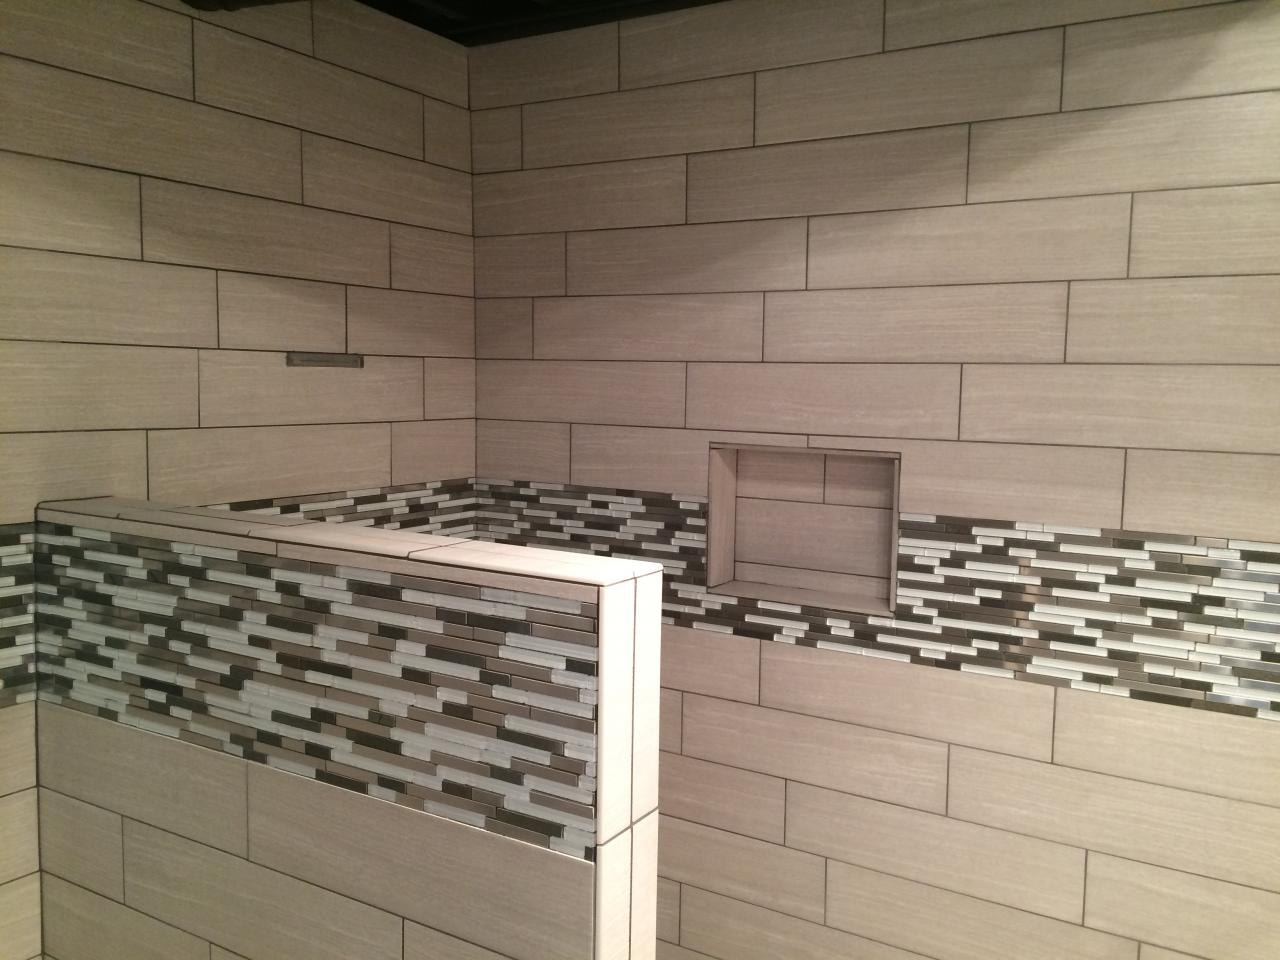 Redlin and Son Painting Inc - Tile Install Jobs